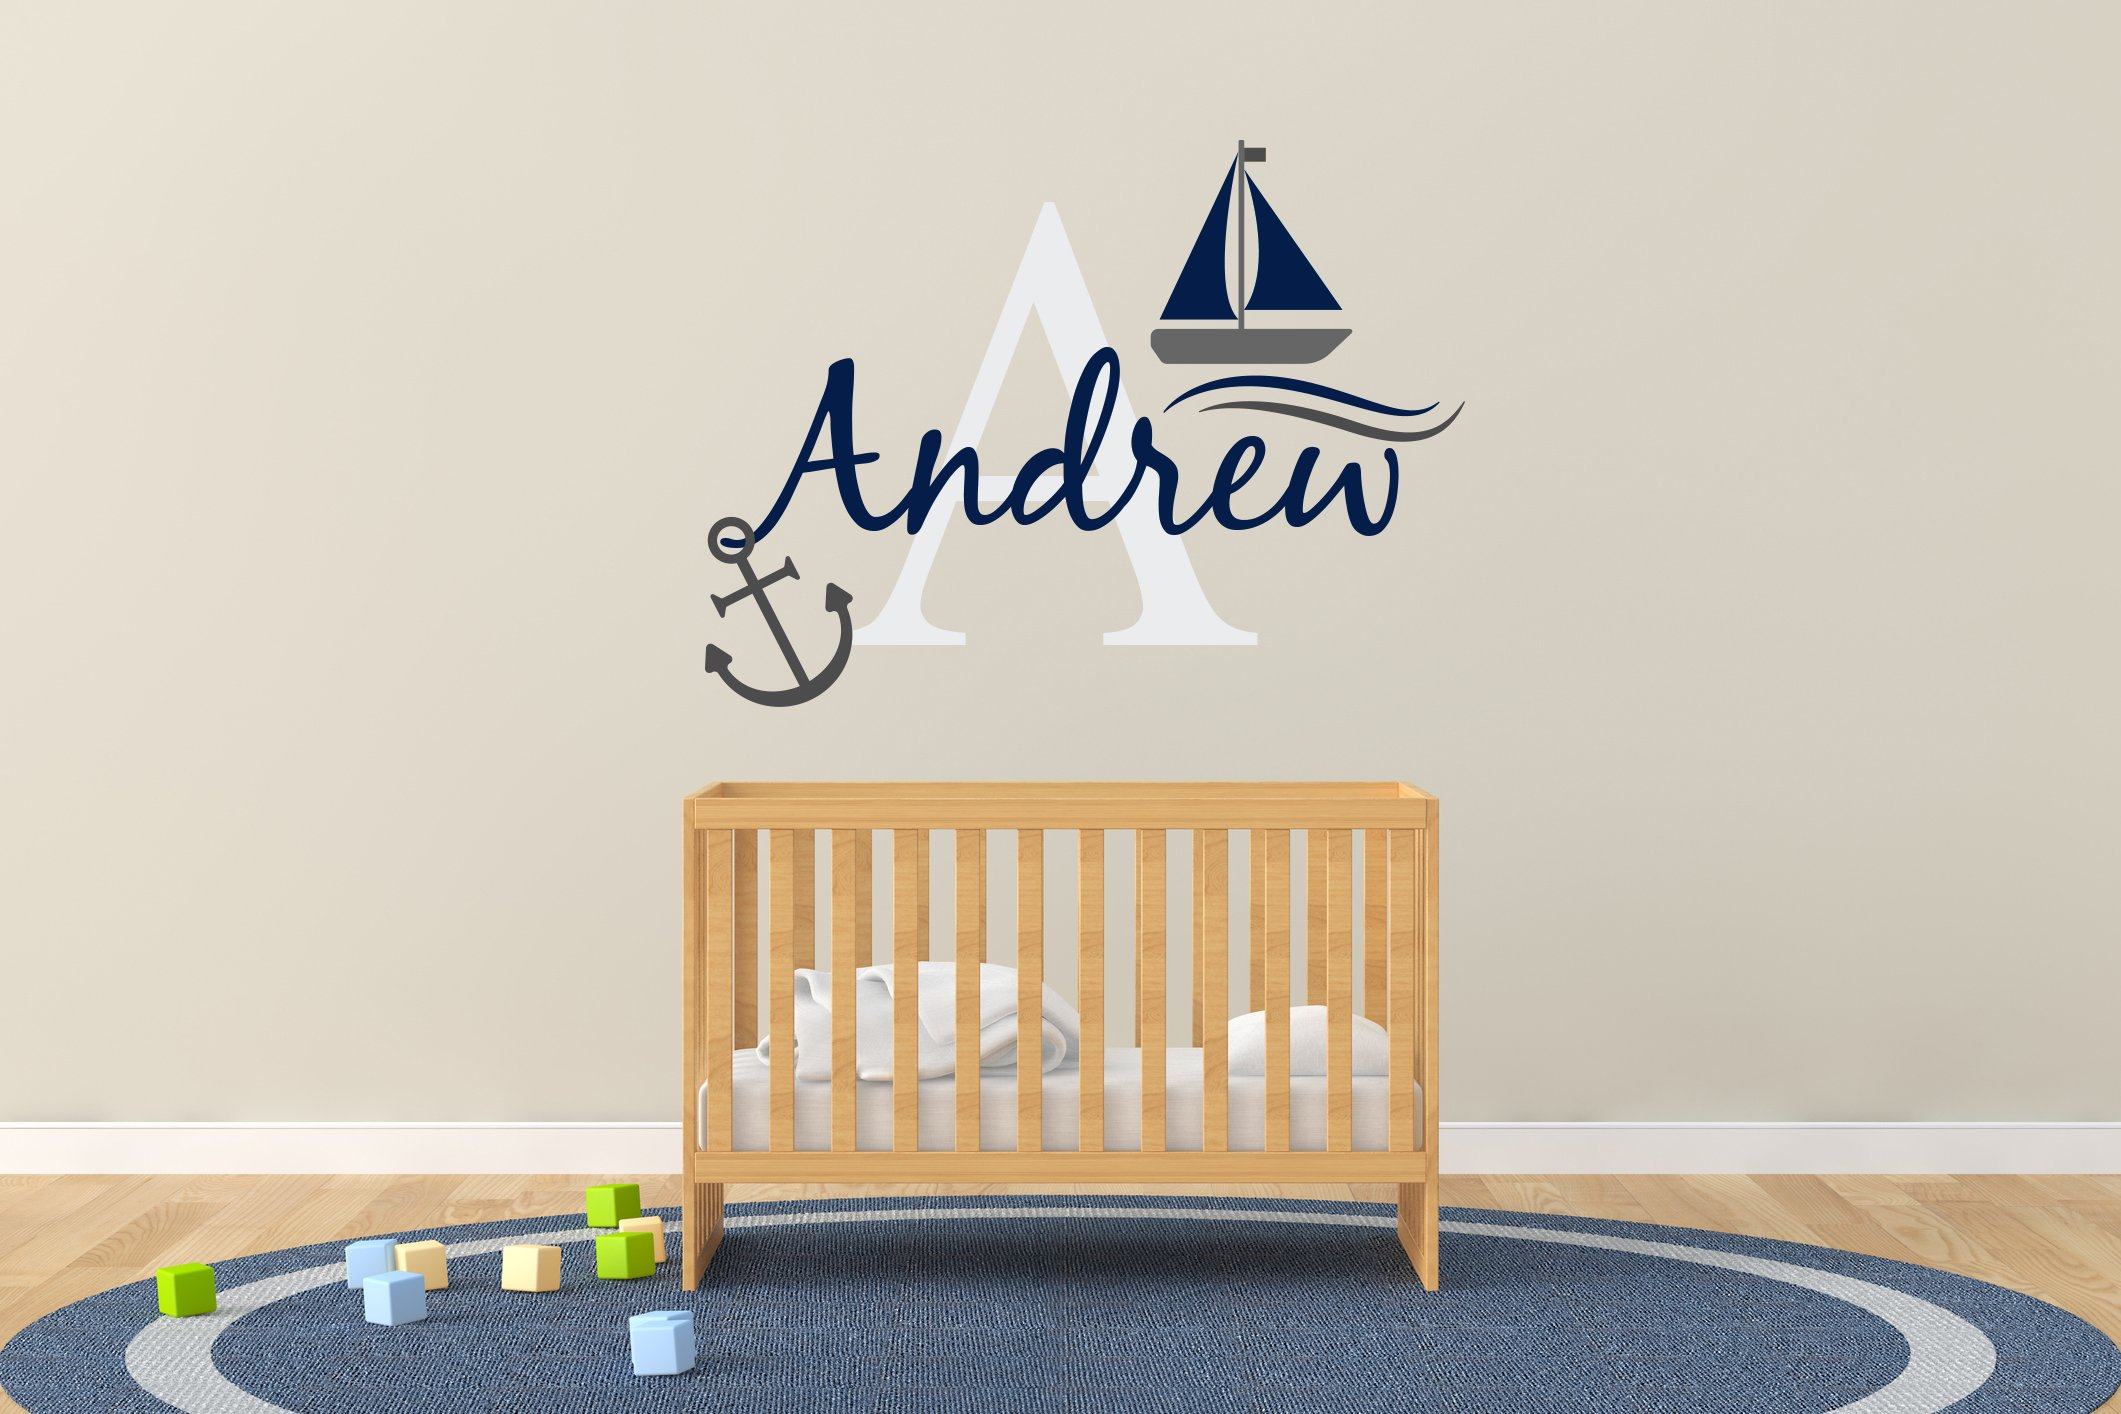 Custom Name & Initial Boat And Anchor - Nautical Theme - Baby Boy - Nursery Wall Decal For Baby Rom Decorations - Mural Wall Decal Sticker For Home Children's Bedroom (R50) (Wide 30''x22'' Height)